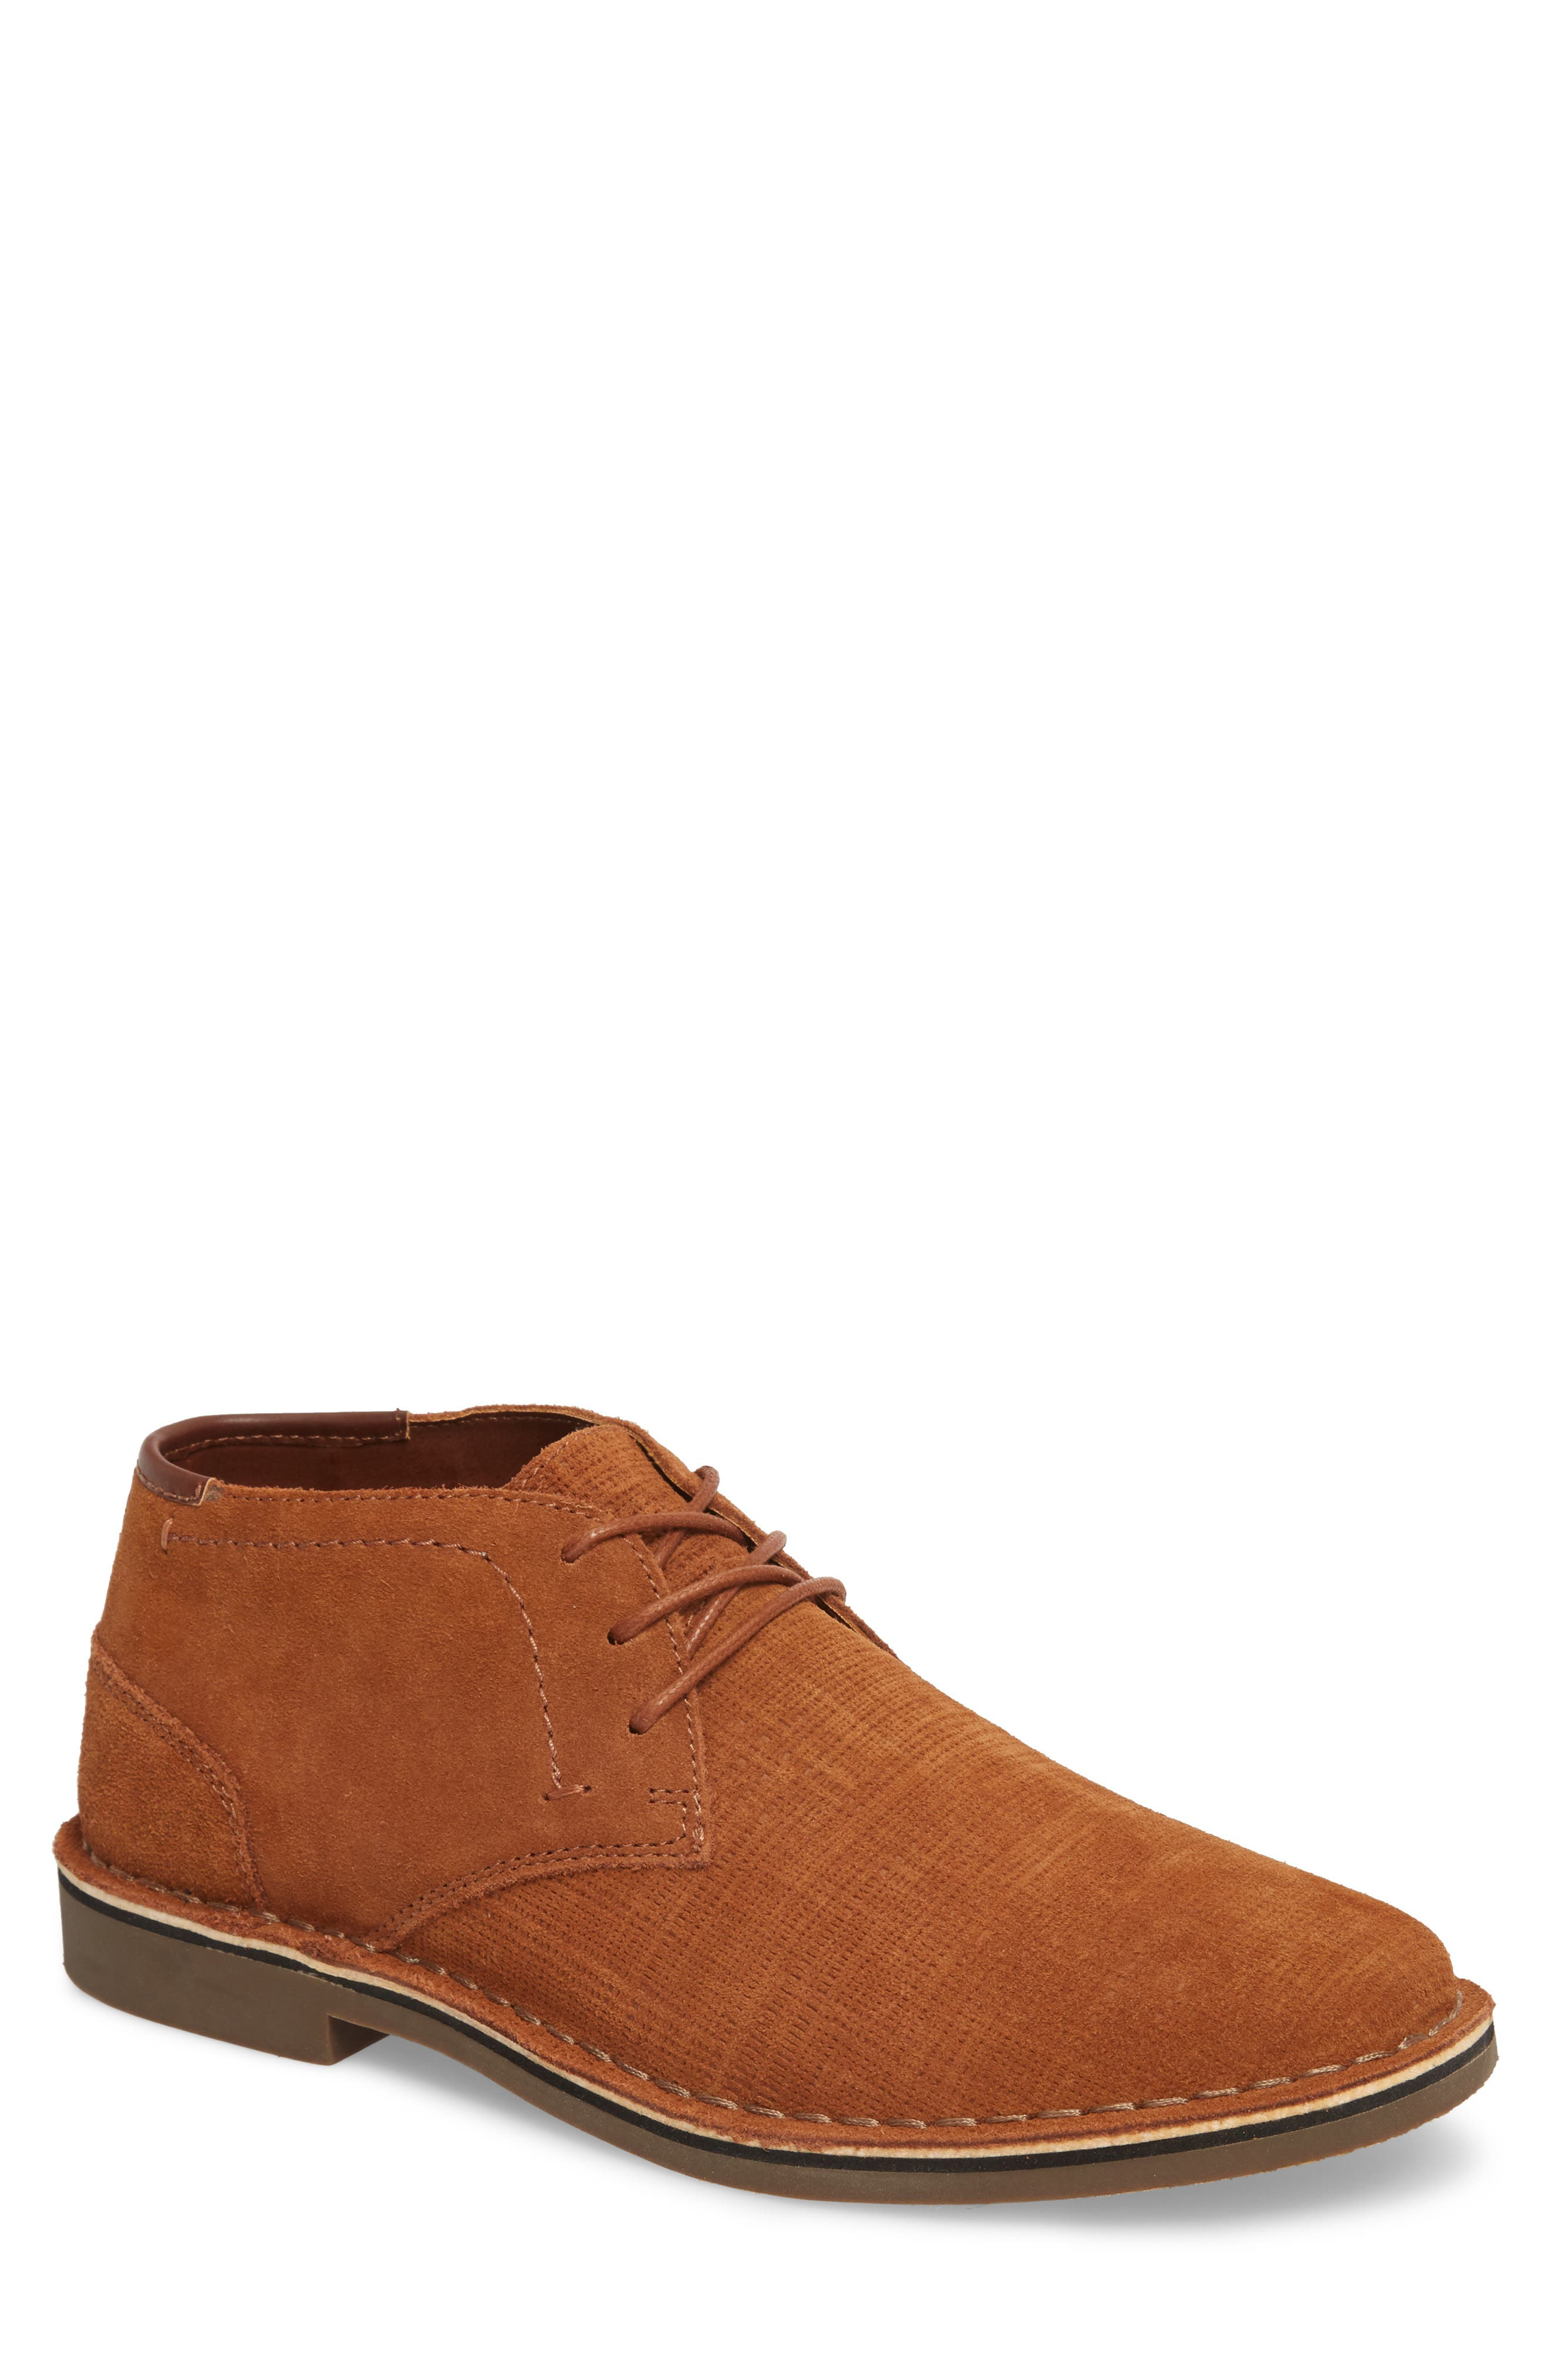 Desert Sun Textured Chukka Boot,                         Main,                         color,